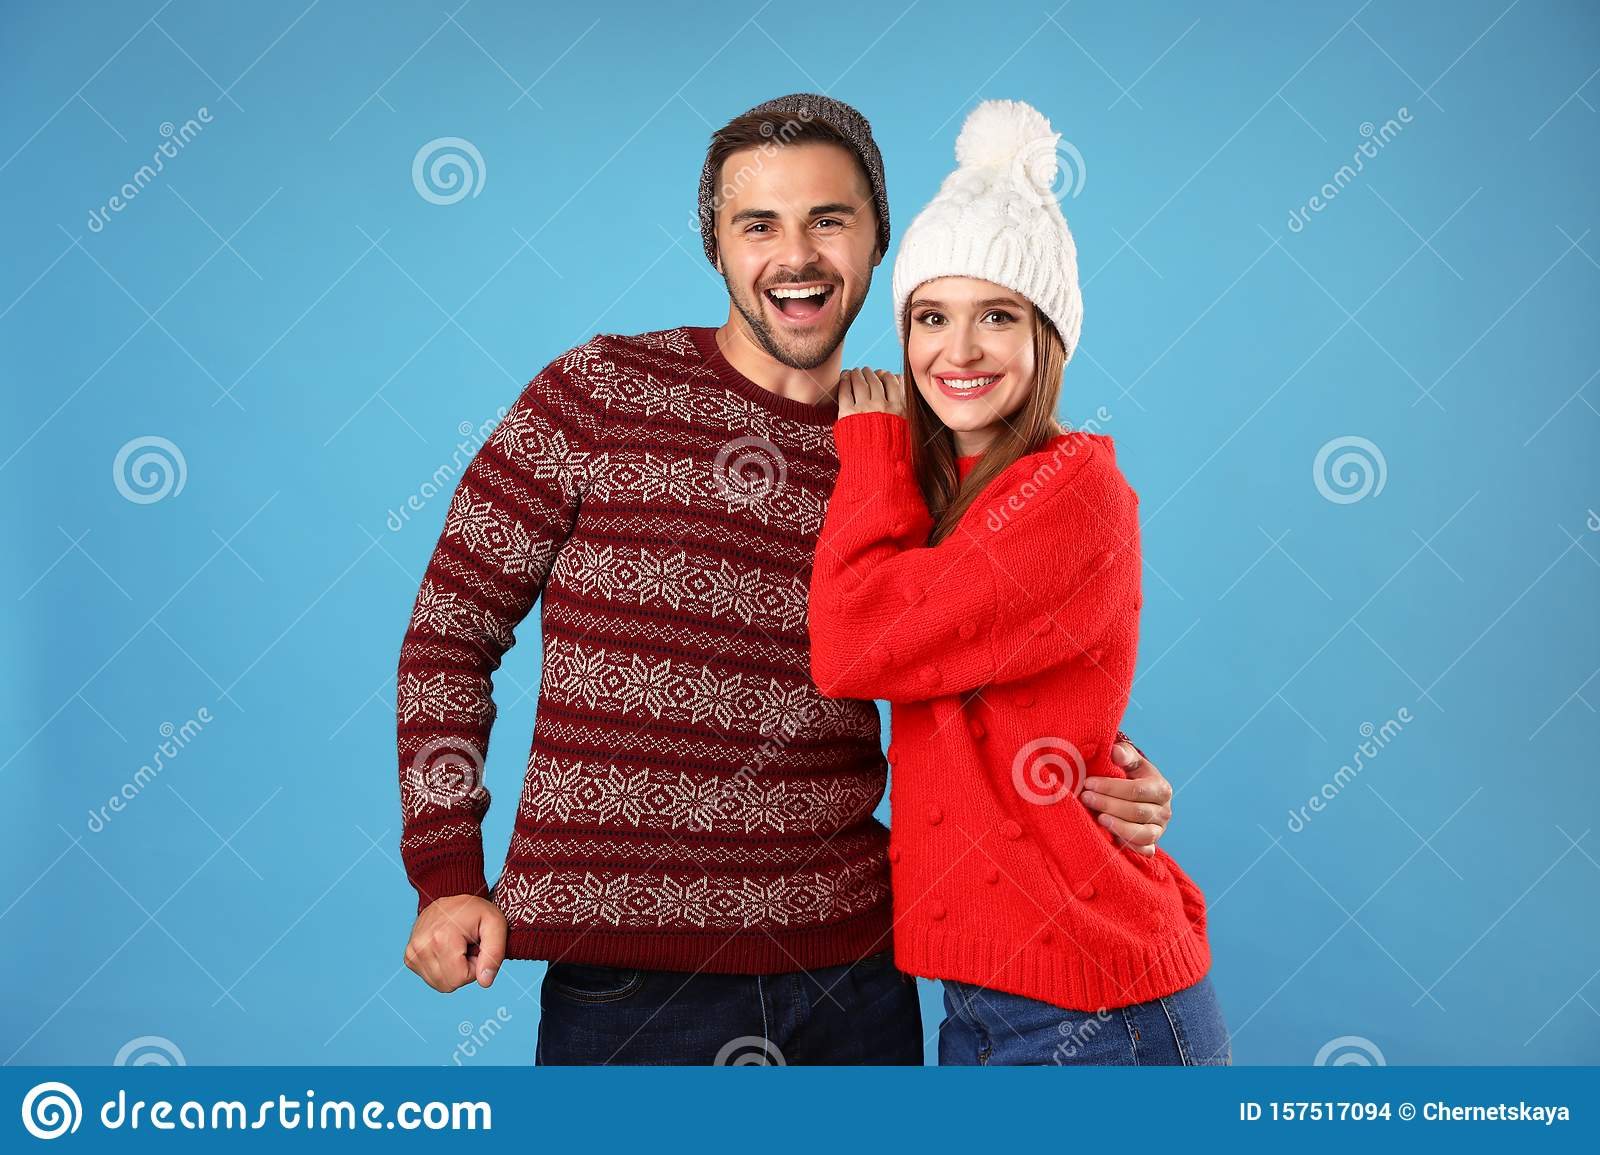 Couple wearing Christmas sweaters and hats on blue